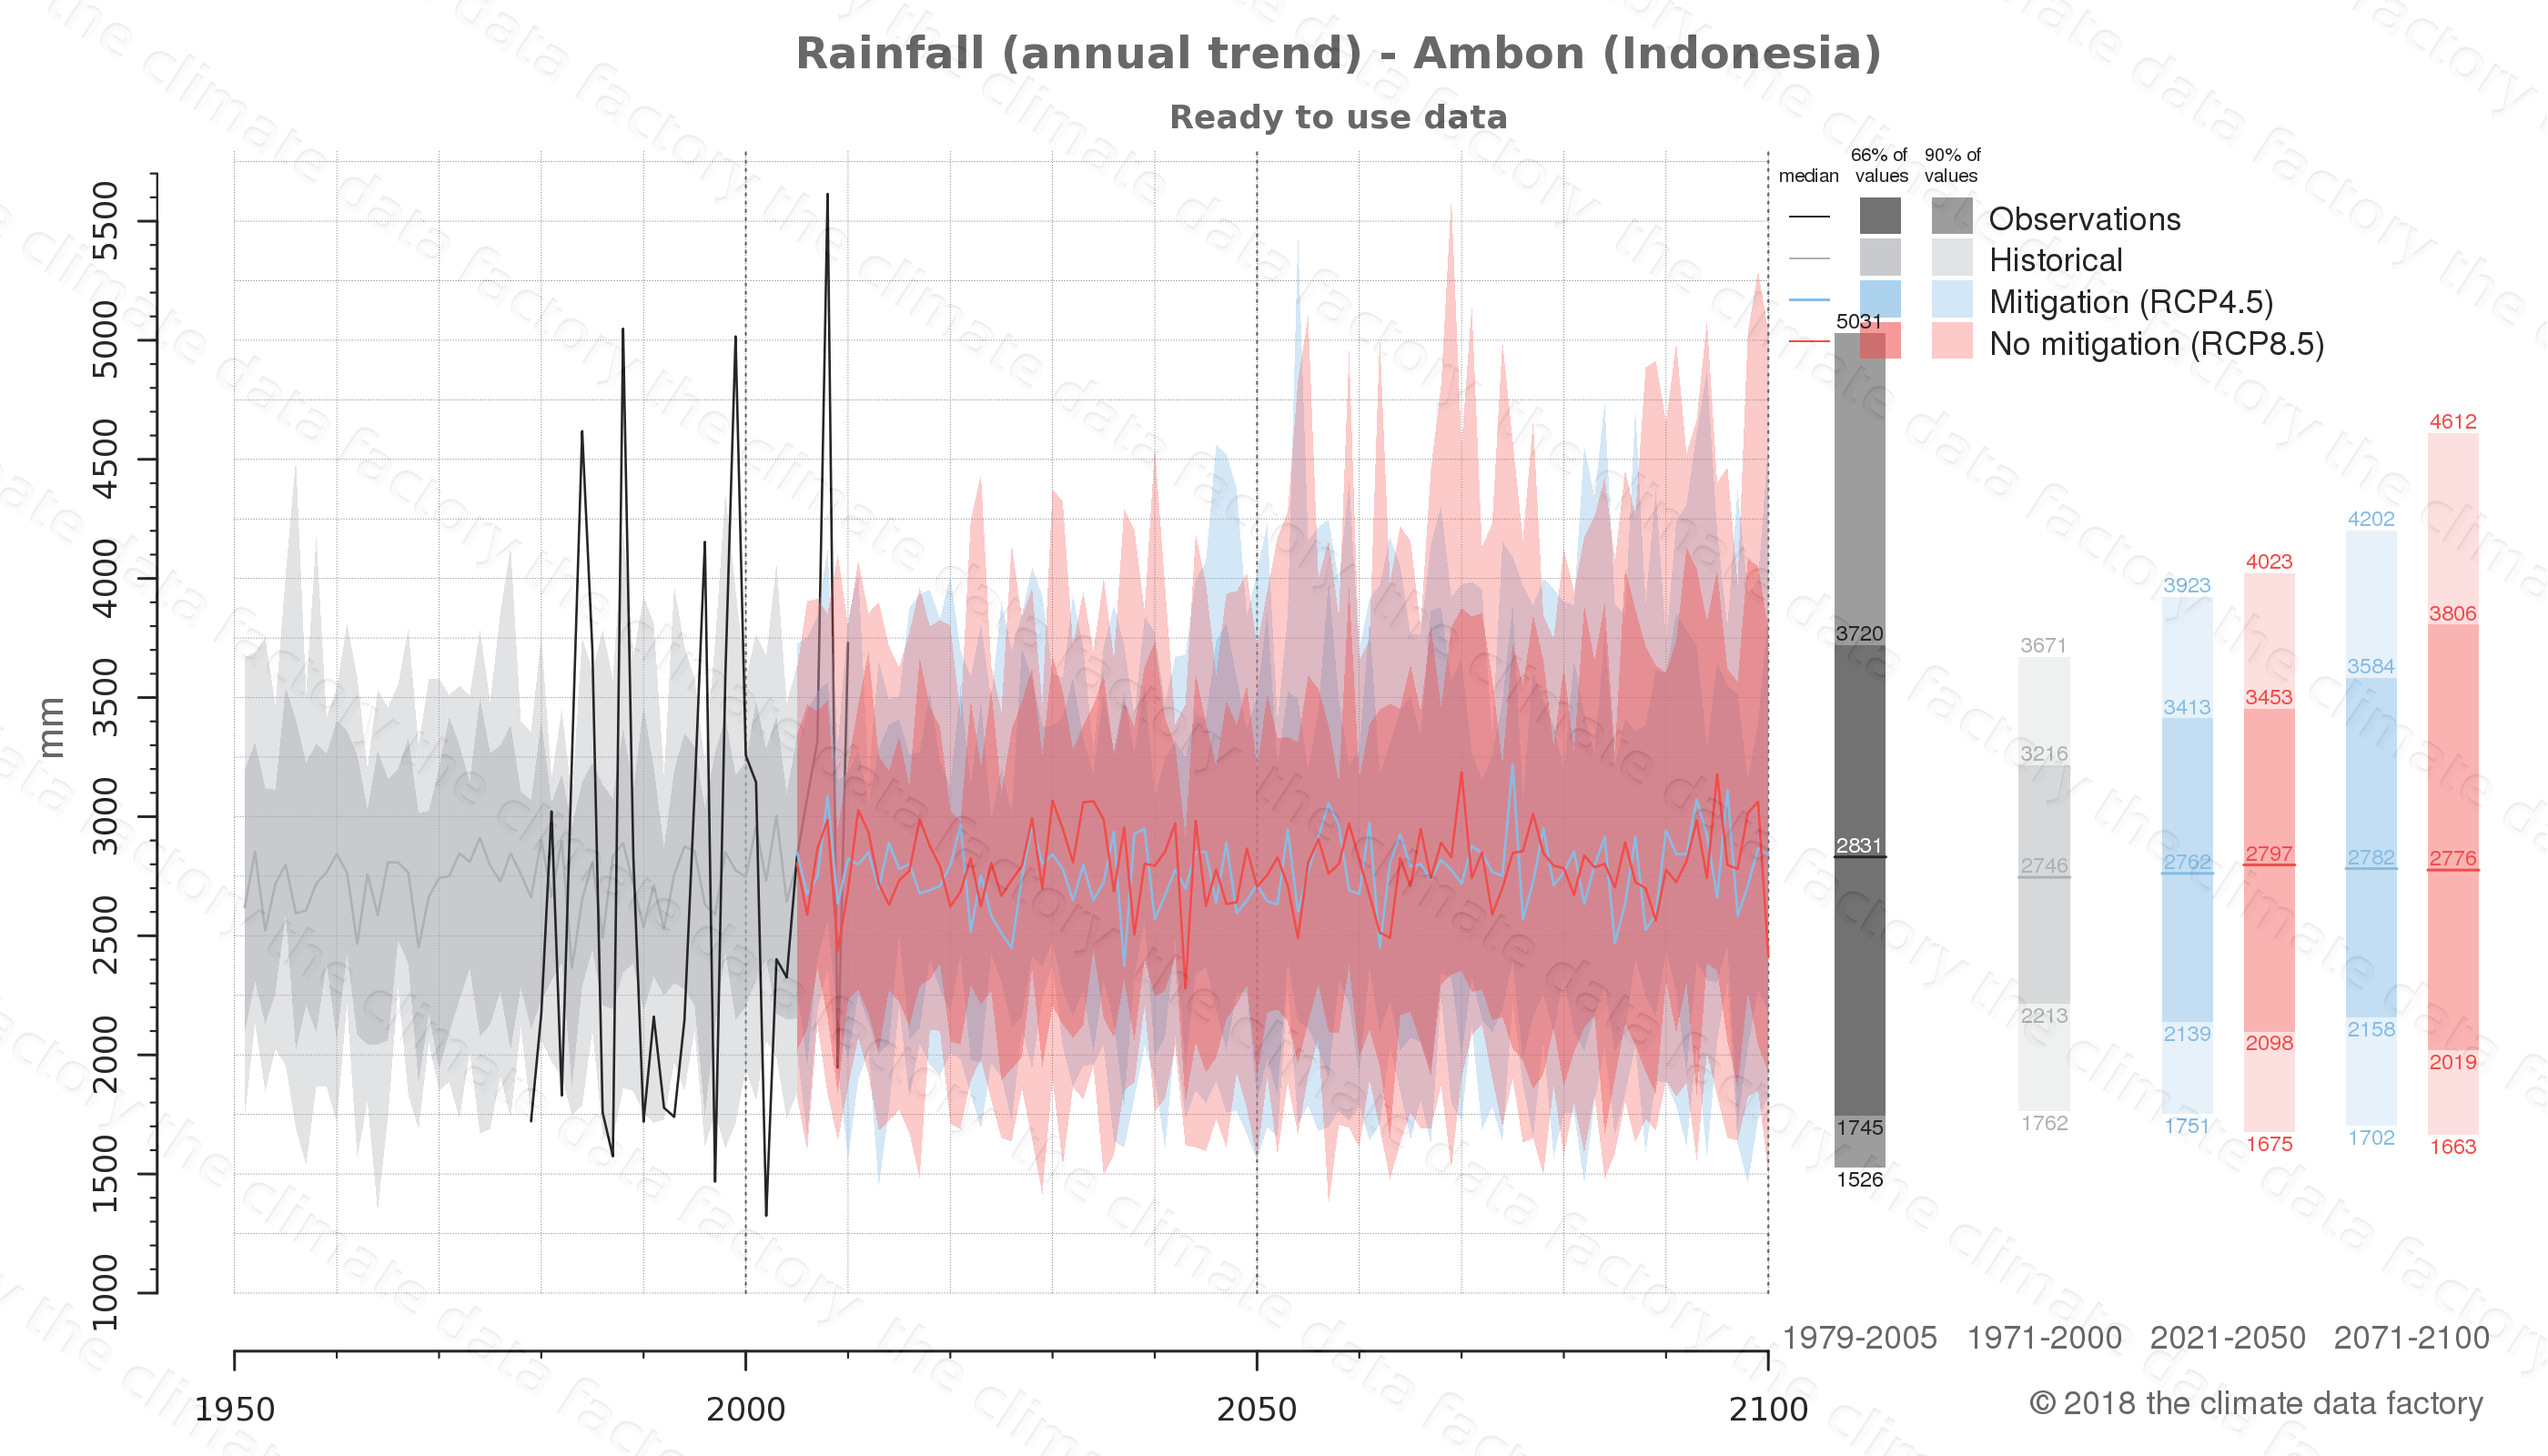 climate change data policy adaptation climate graph city data rainfall ambon indonesia